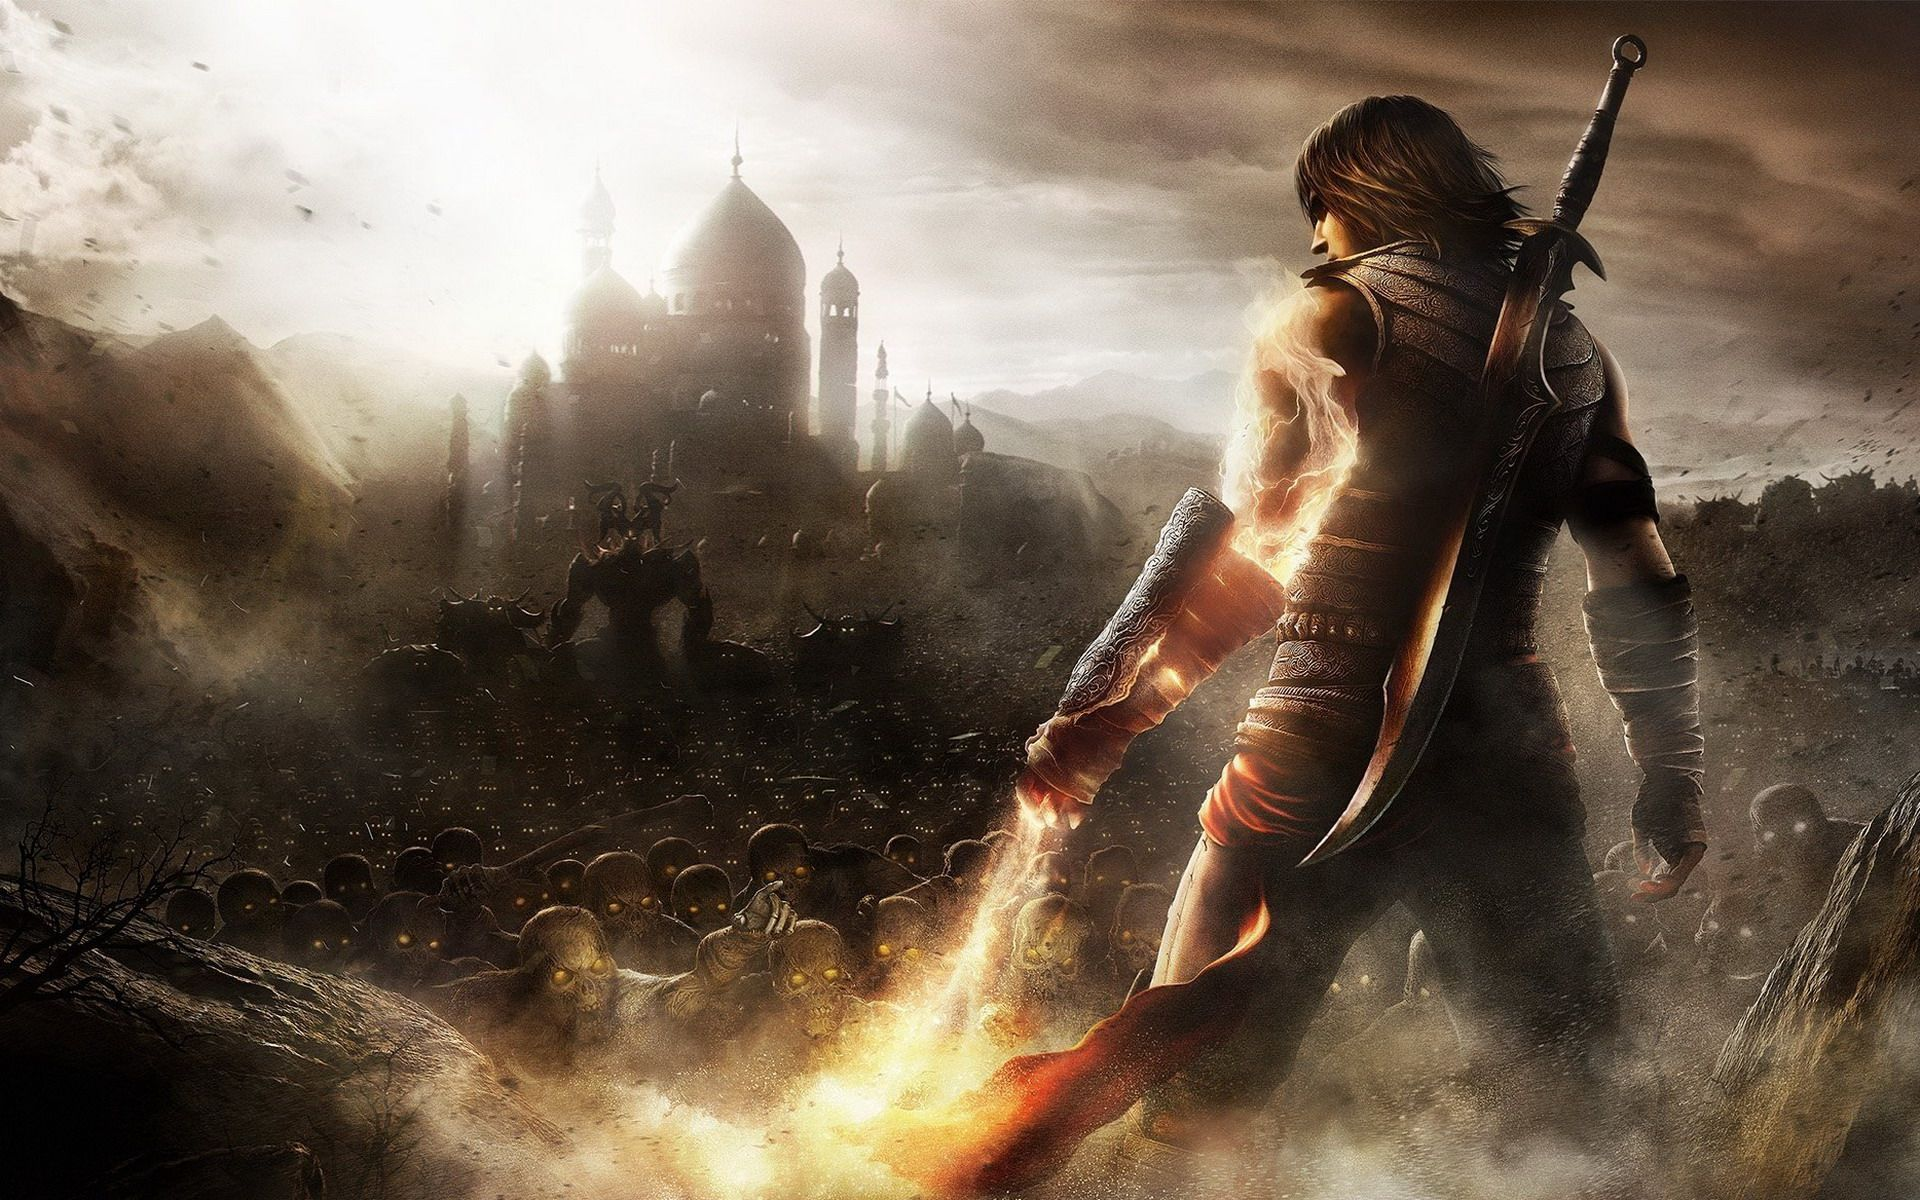 Prince Persia Forgotten Sands Gaming Desktop Hd Wallpaper Prince Of Persia Persia Fantasy